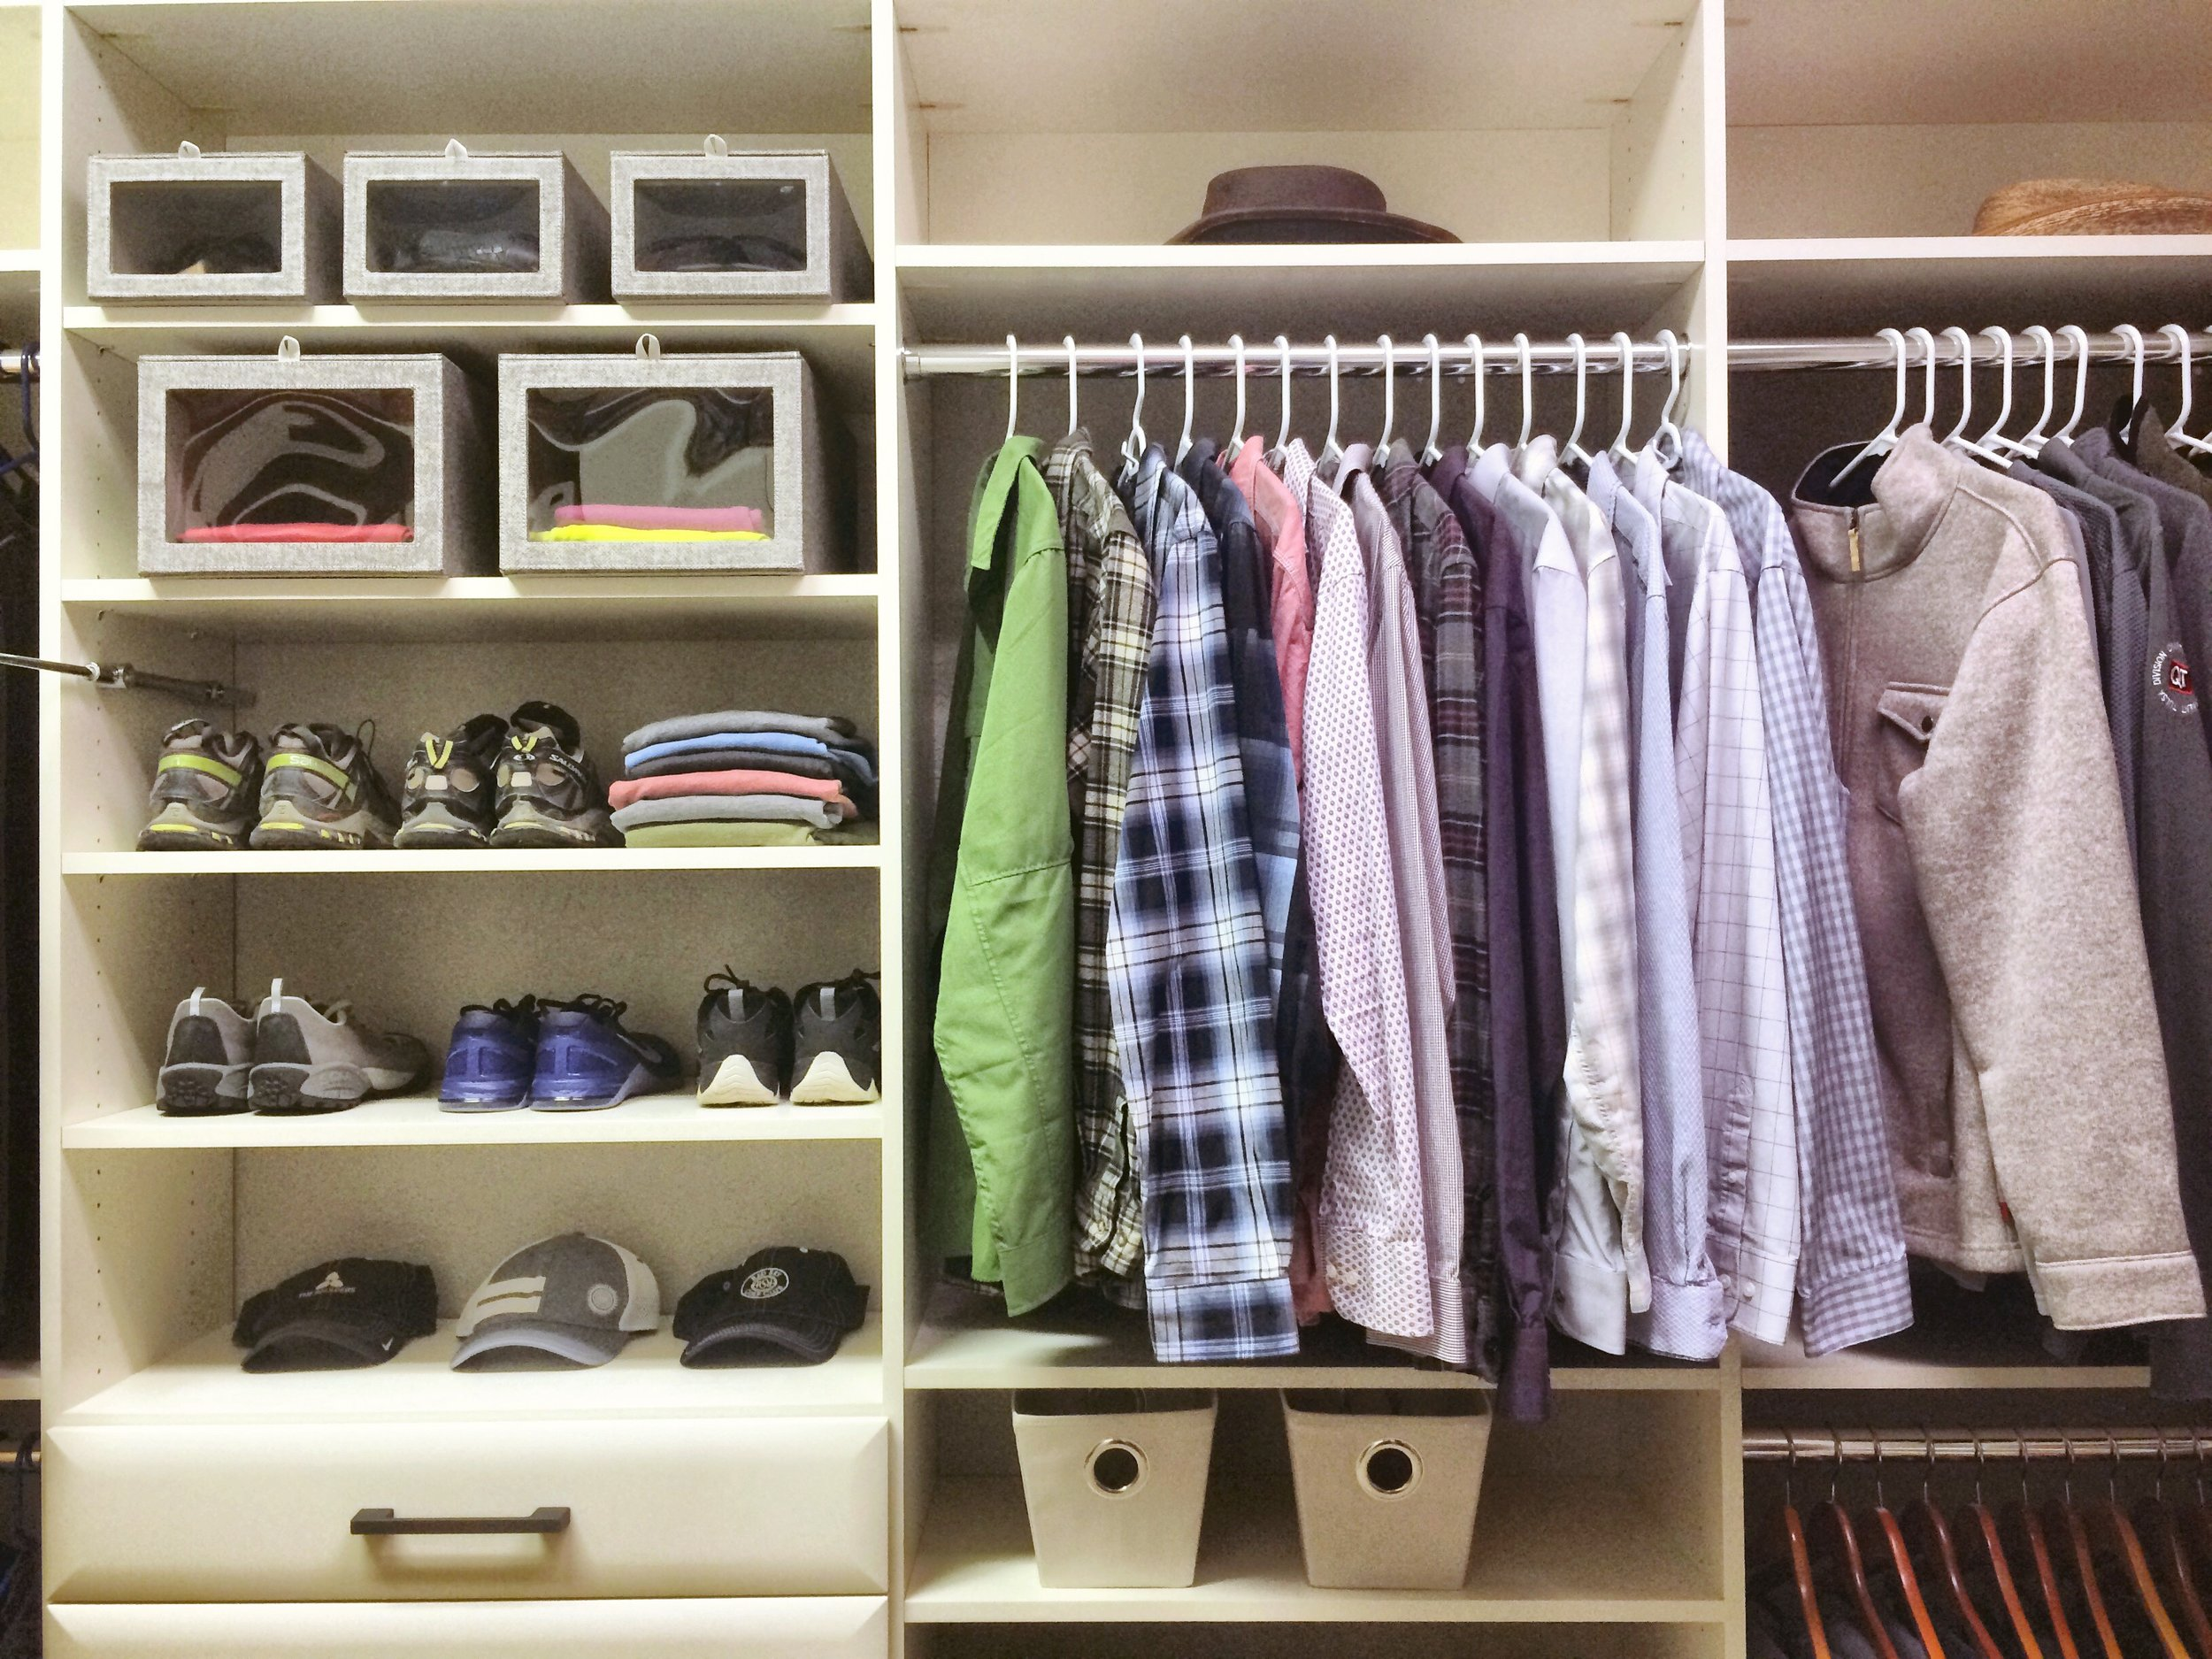 Match hangers in each part of your closet, based on storage task. Here's an example from a recent custom closet installation by Closets of Tulsa.  Call now  for your FREE consultation and 3-D closet design:  918.609.0214